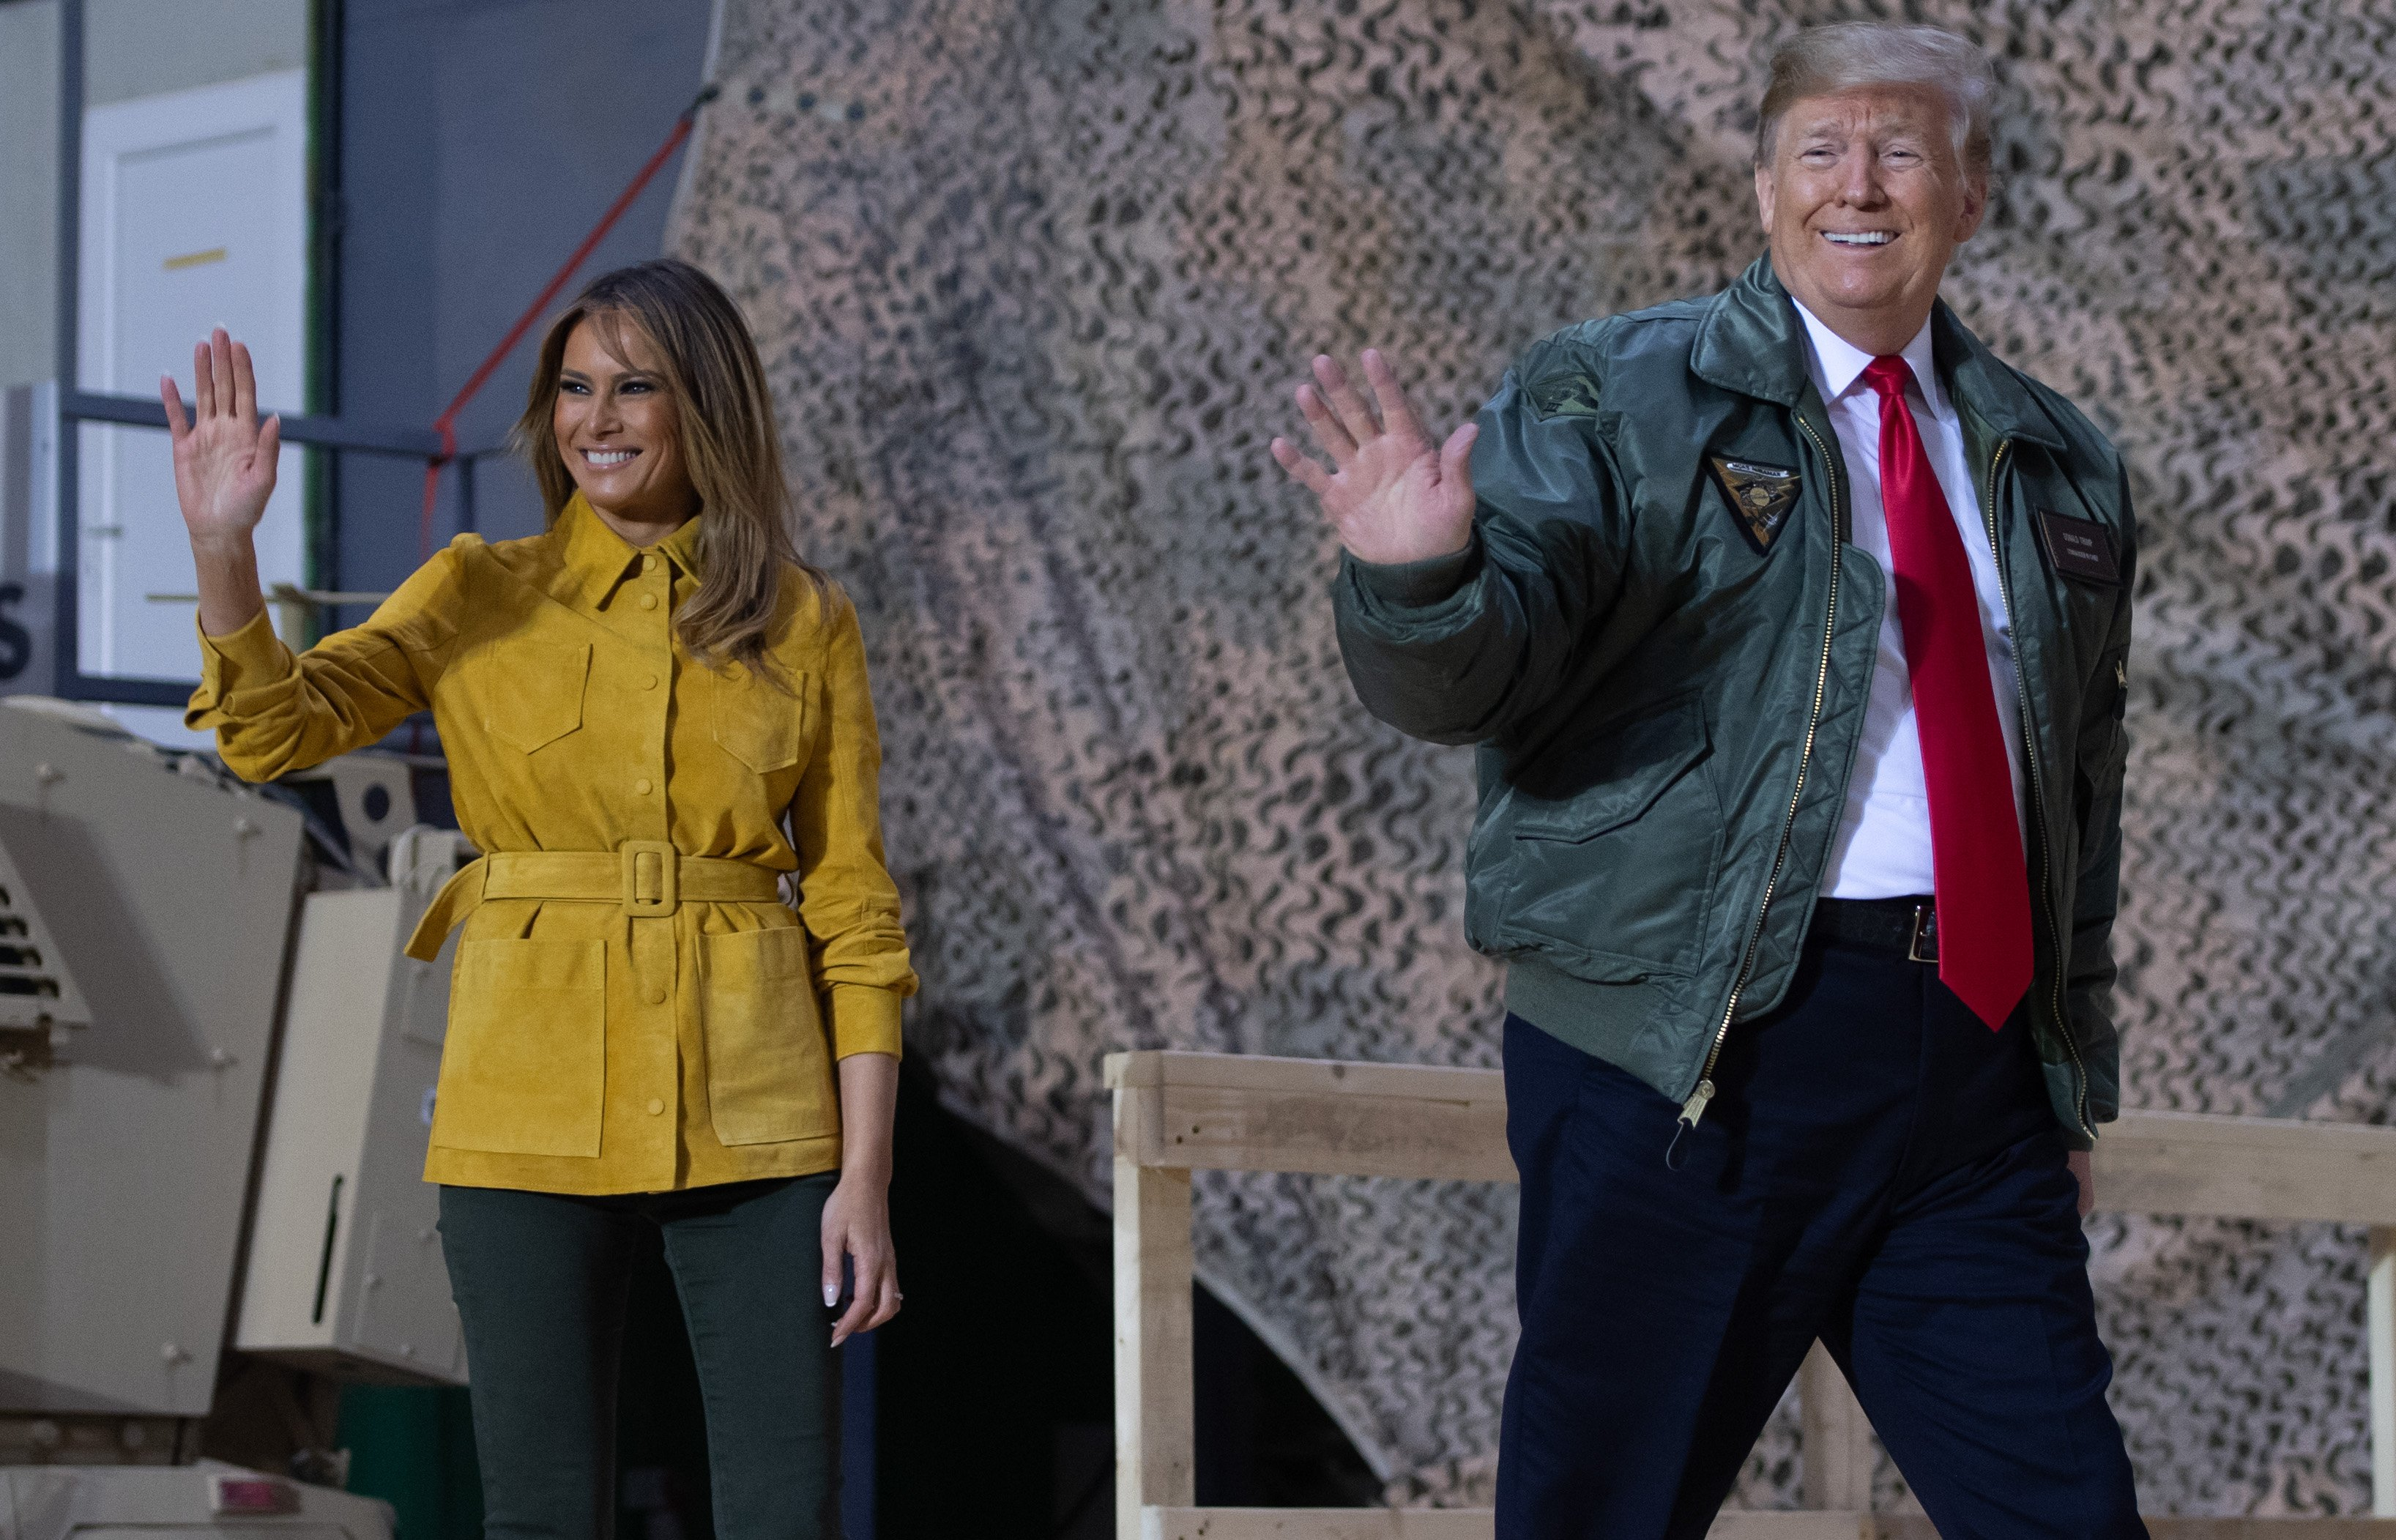 US President Donald Trump and First Lady Melania Trump arrive to speak to members of the US military during an unannounced trip to Al Asad Air Base in Iraq on December 26, 2018. - President Donald Trump arrived in Iraq on his first visit to US troops deployed in a war zone since his election two years ago (Photo by SAUL LOEB/AFP/Getty Images)